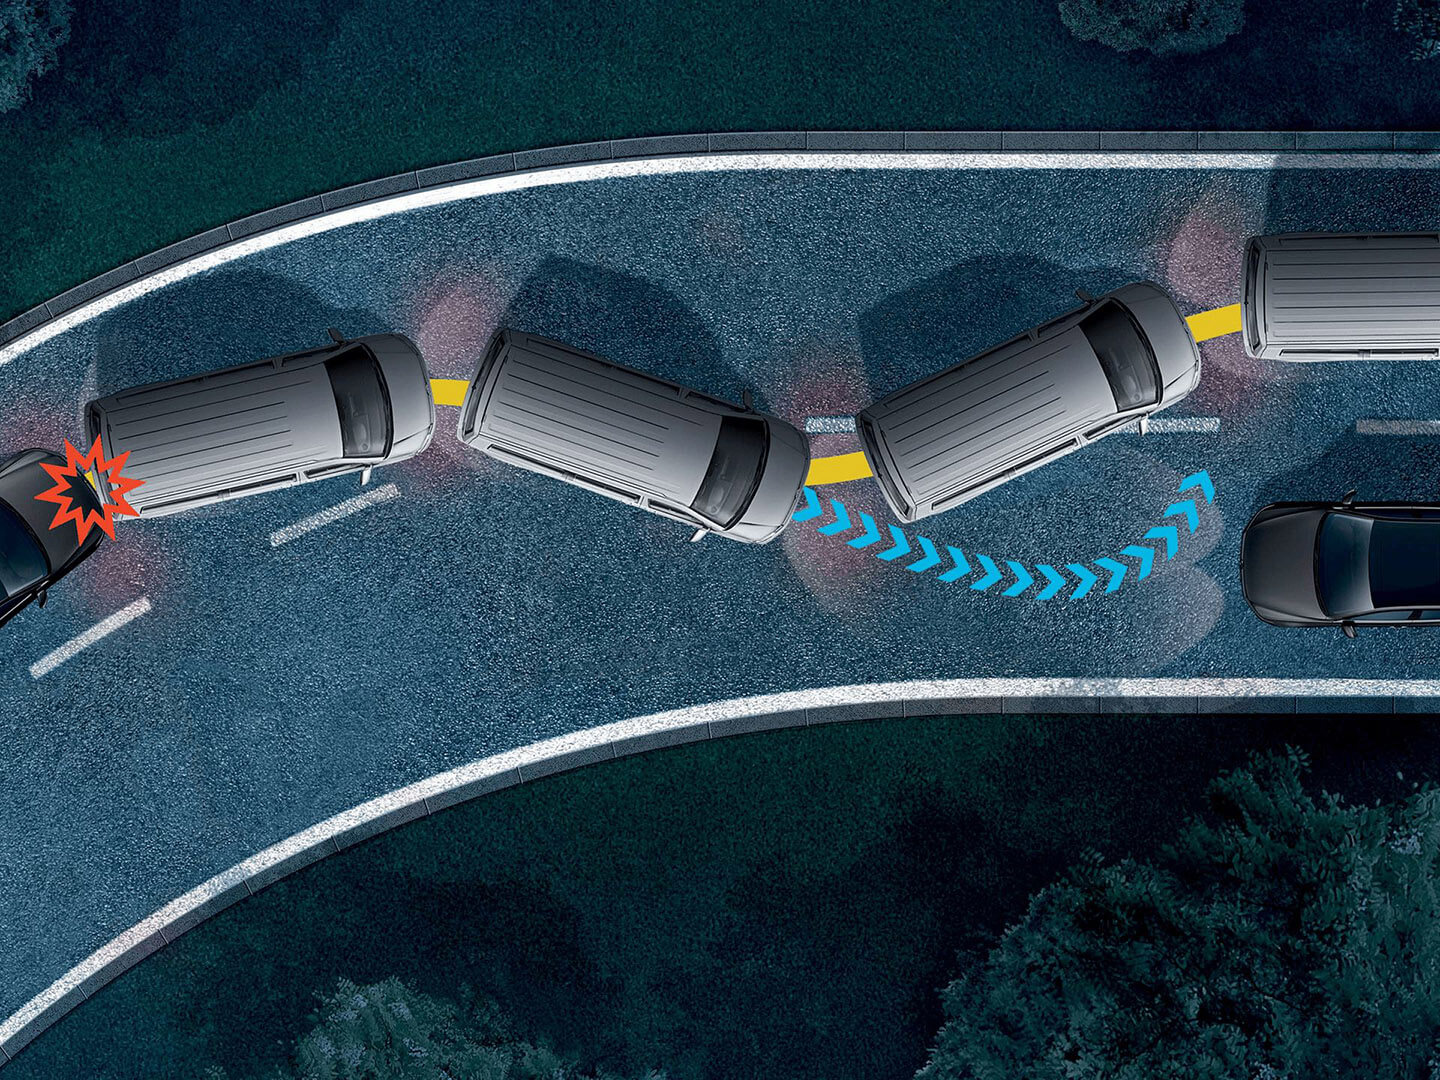 Thinking ahead of accidents  Multi-Collision Brake Image